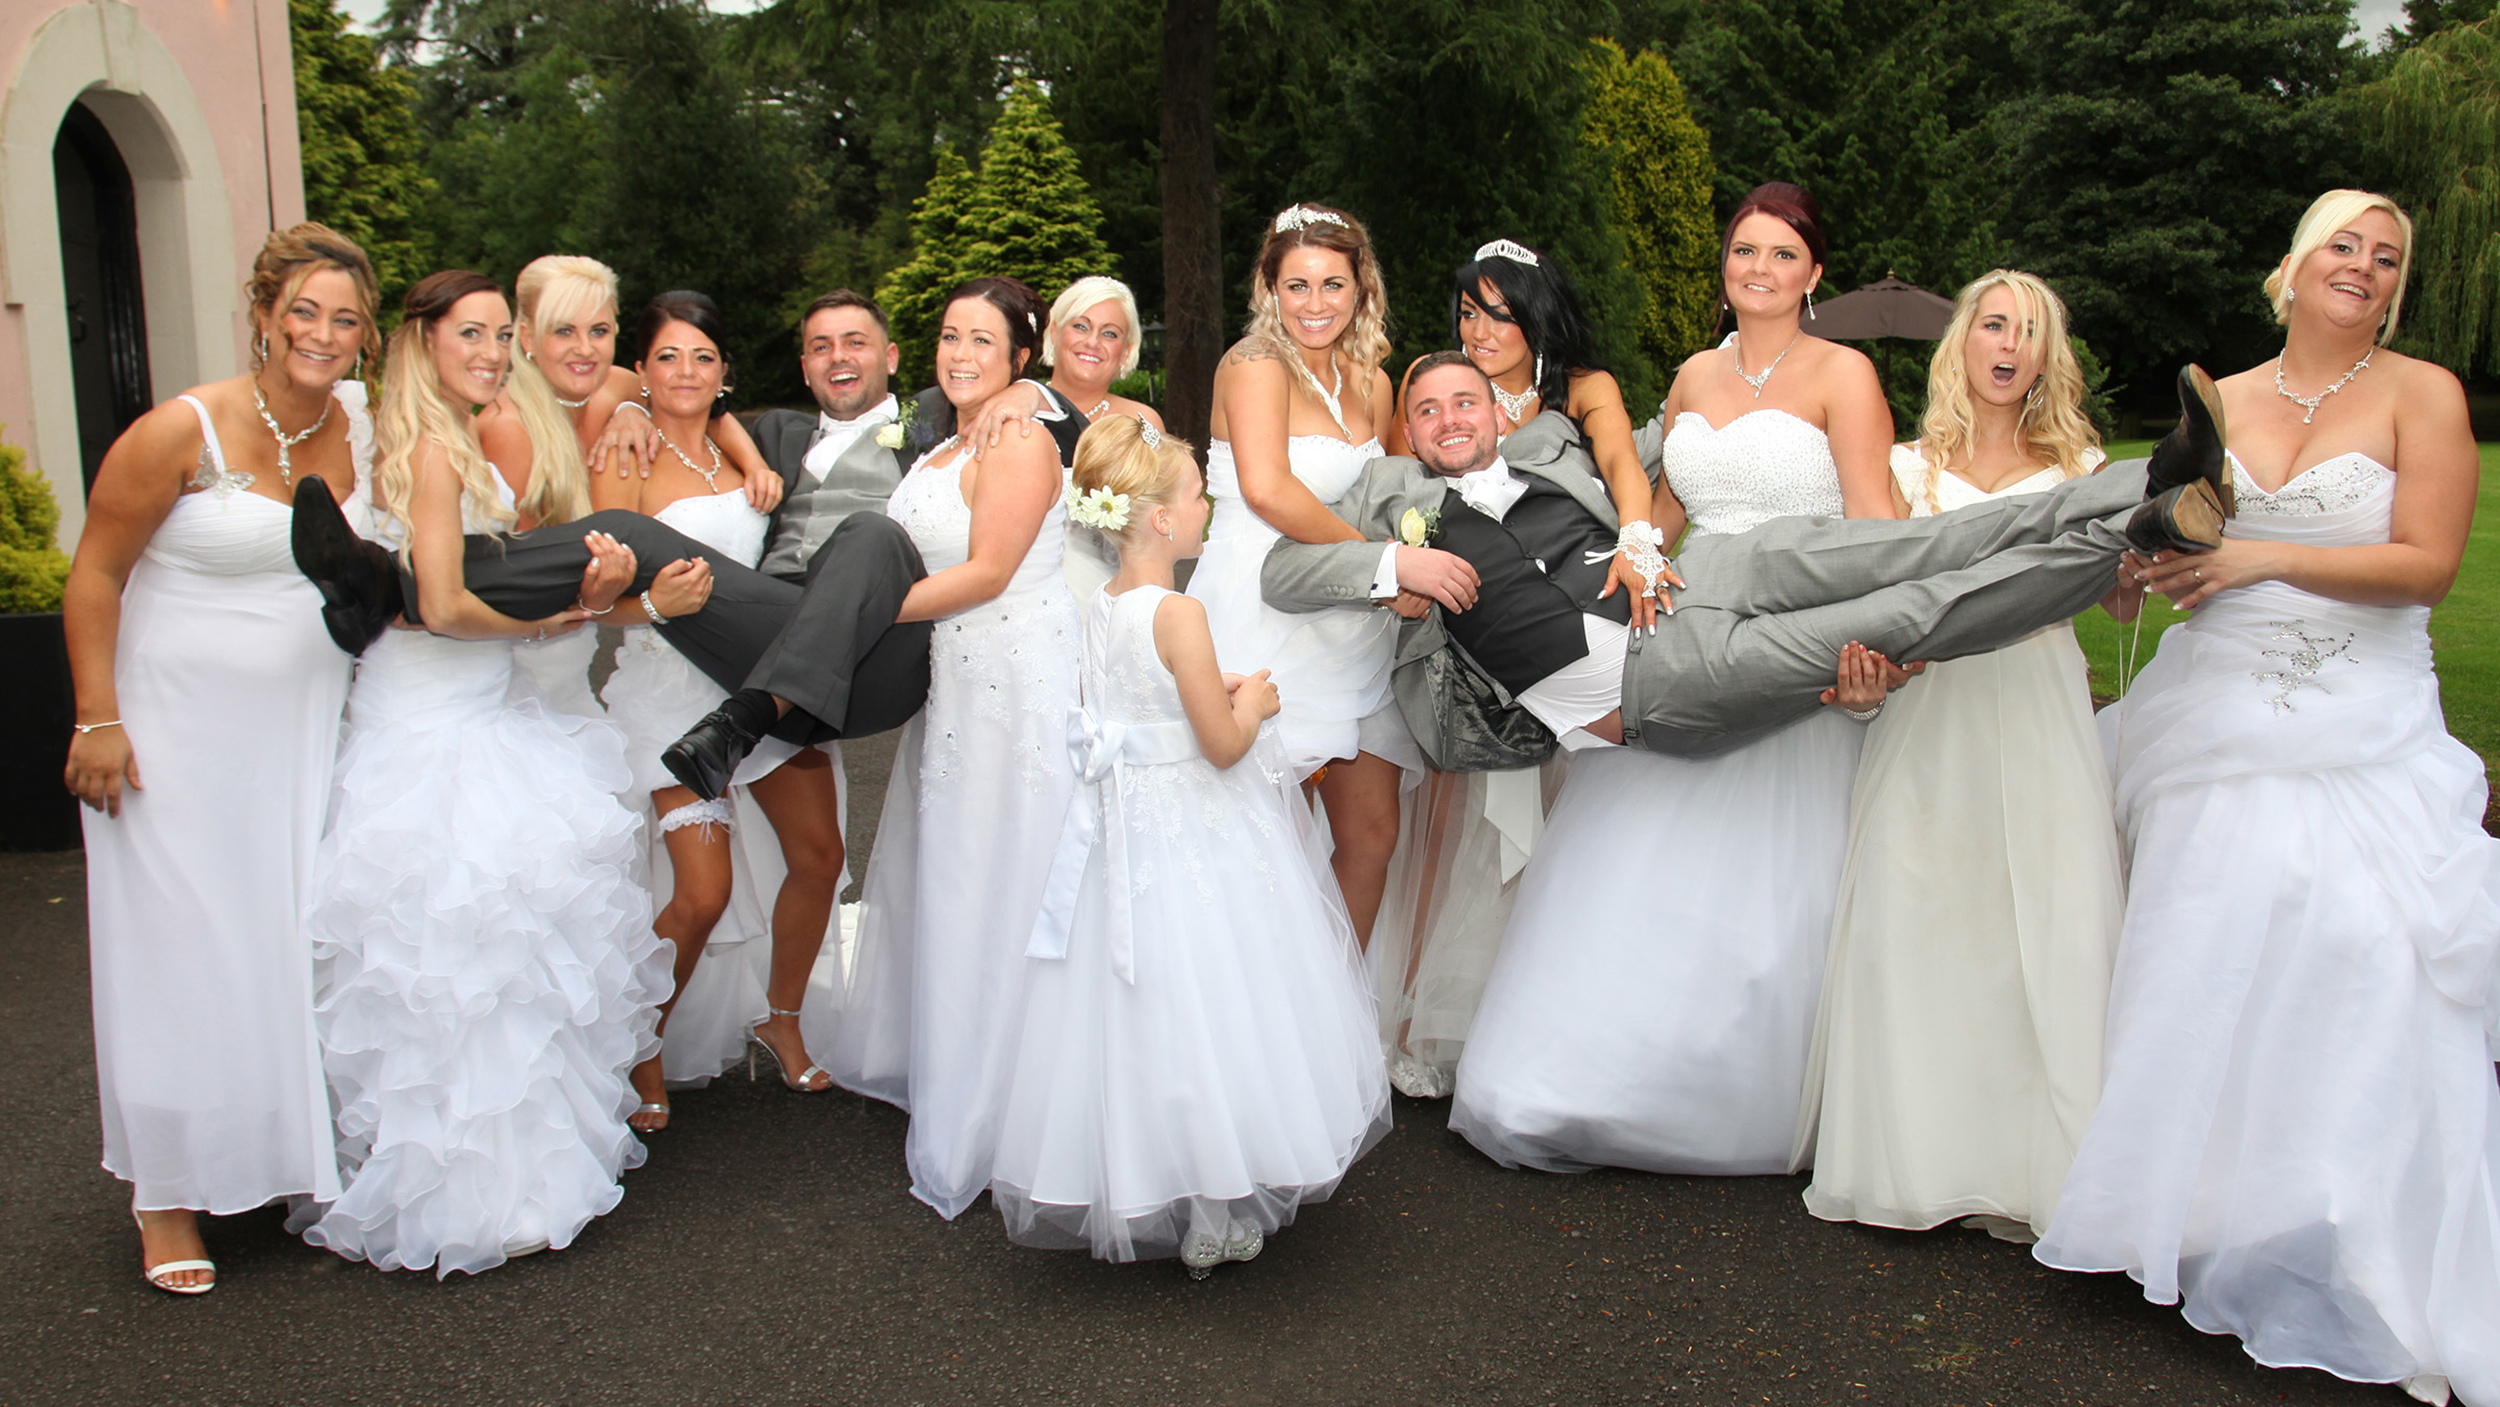 Gay Couple 39 S Wedding Has 10 Bridesmaids All In White